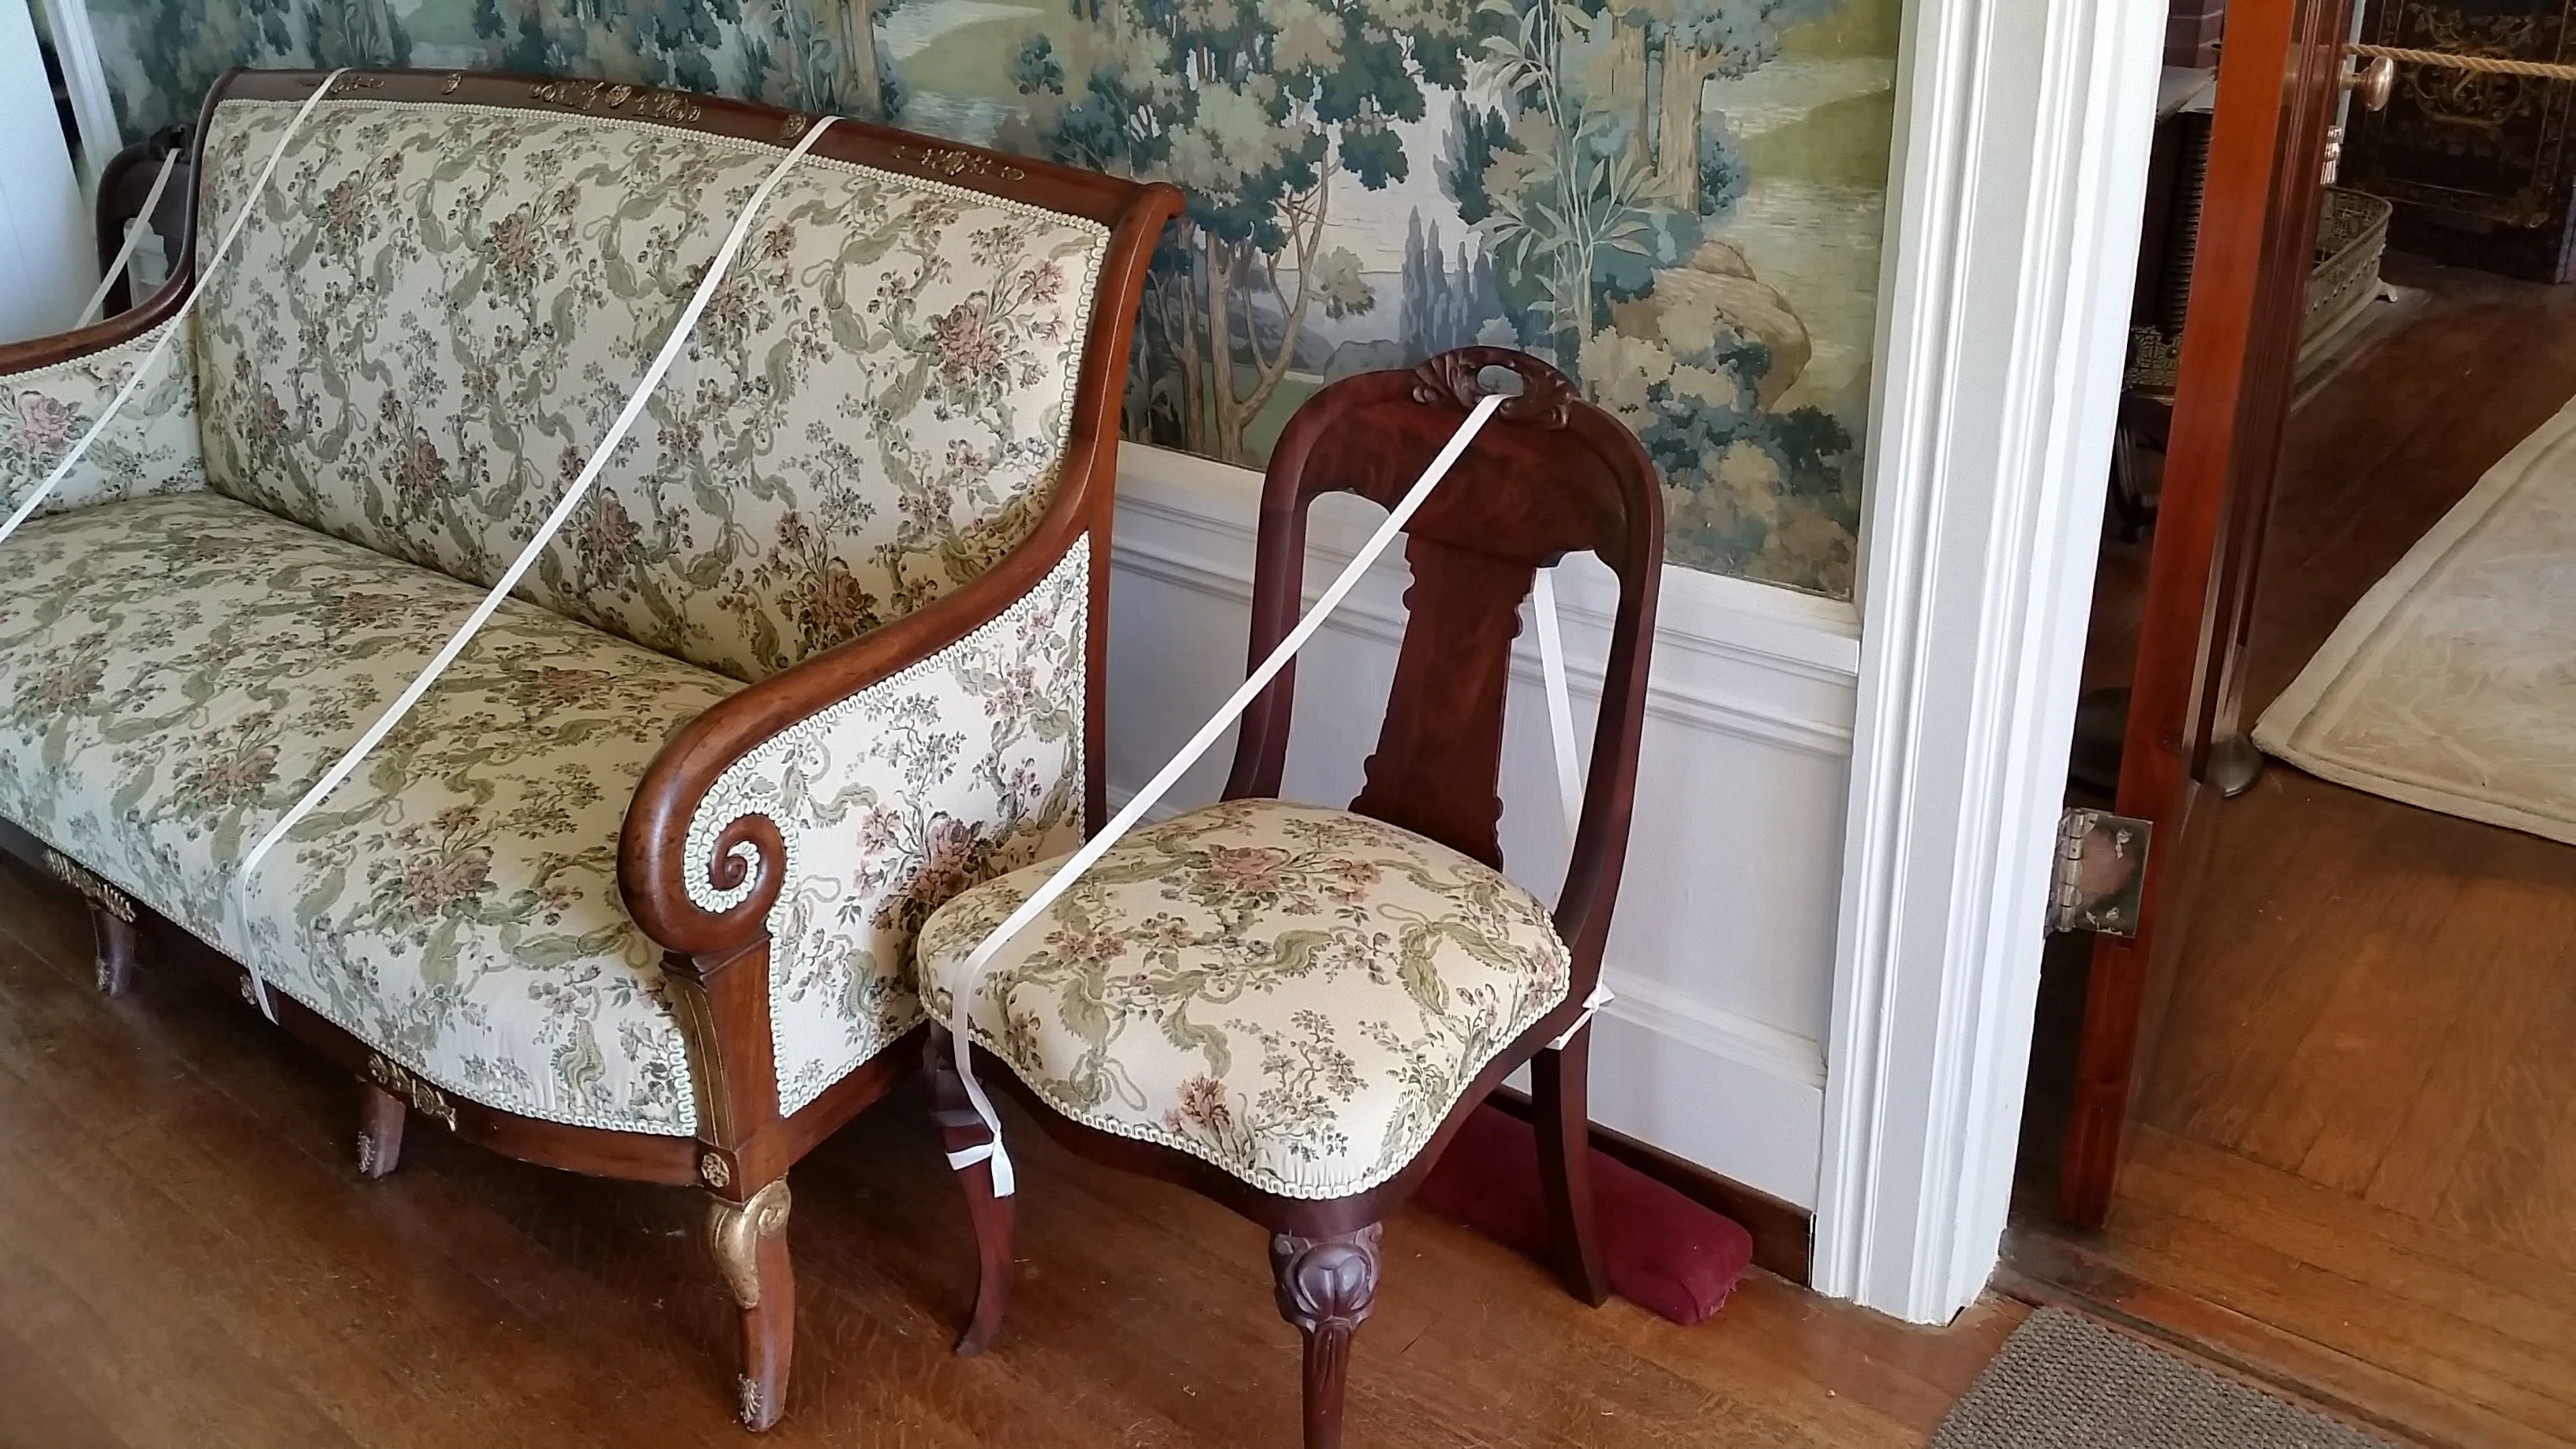 The Misused & Confused Chair Rail THISisCarpentry